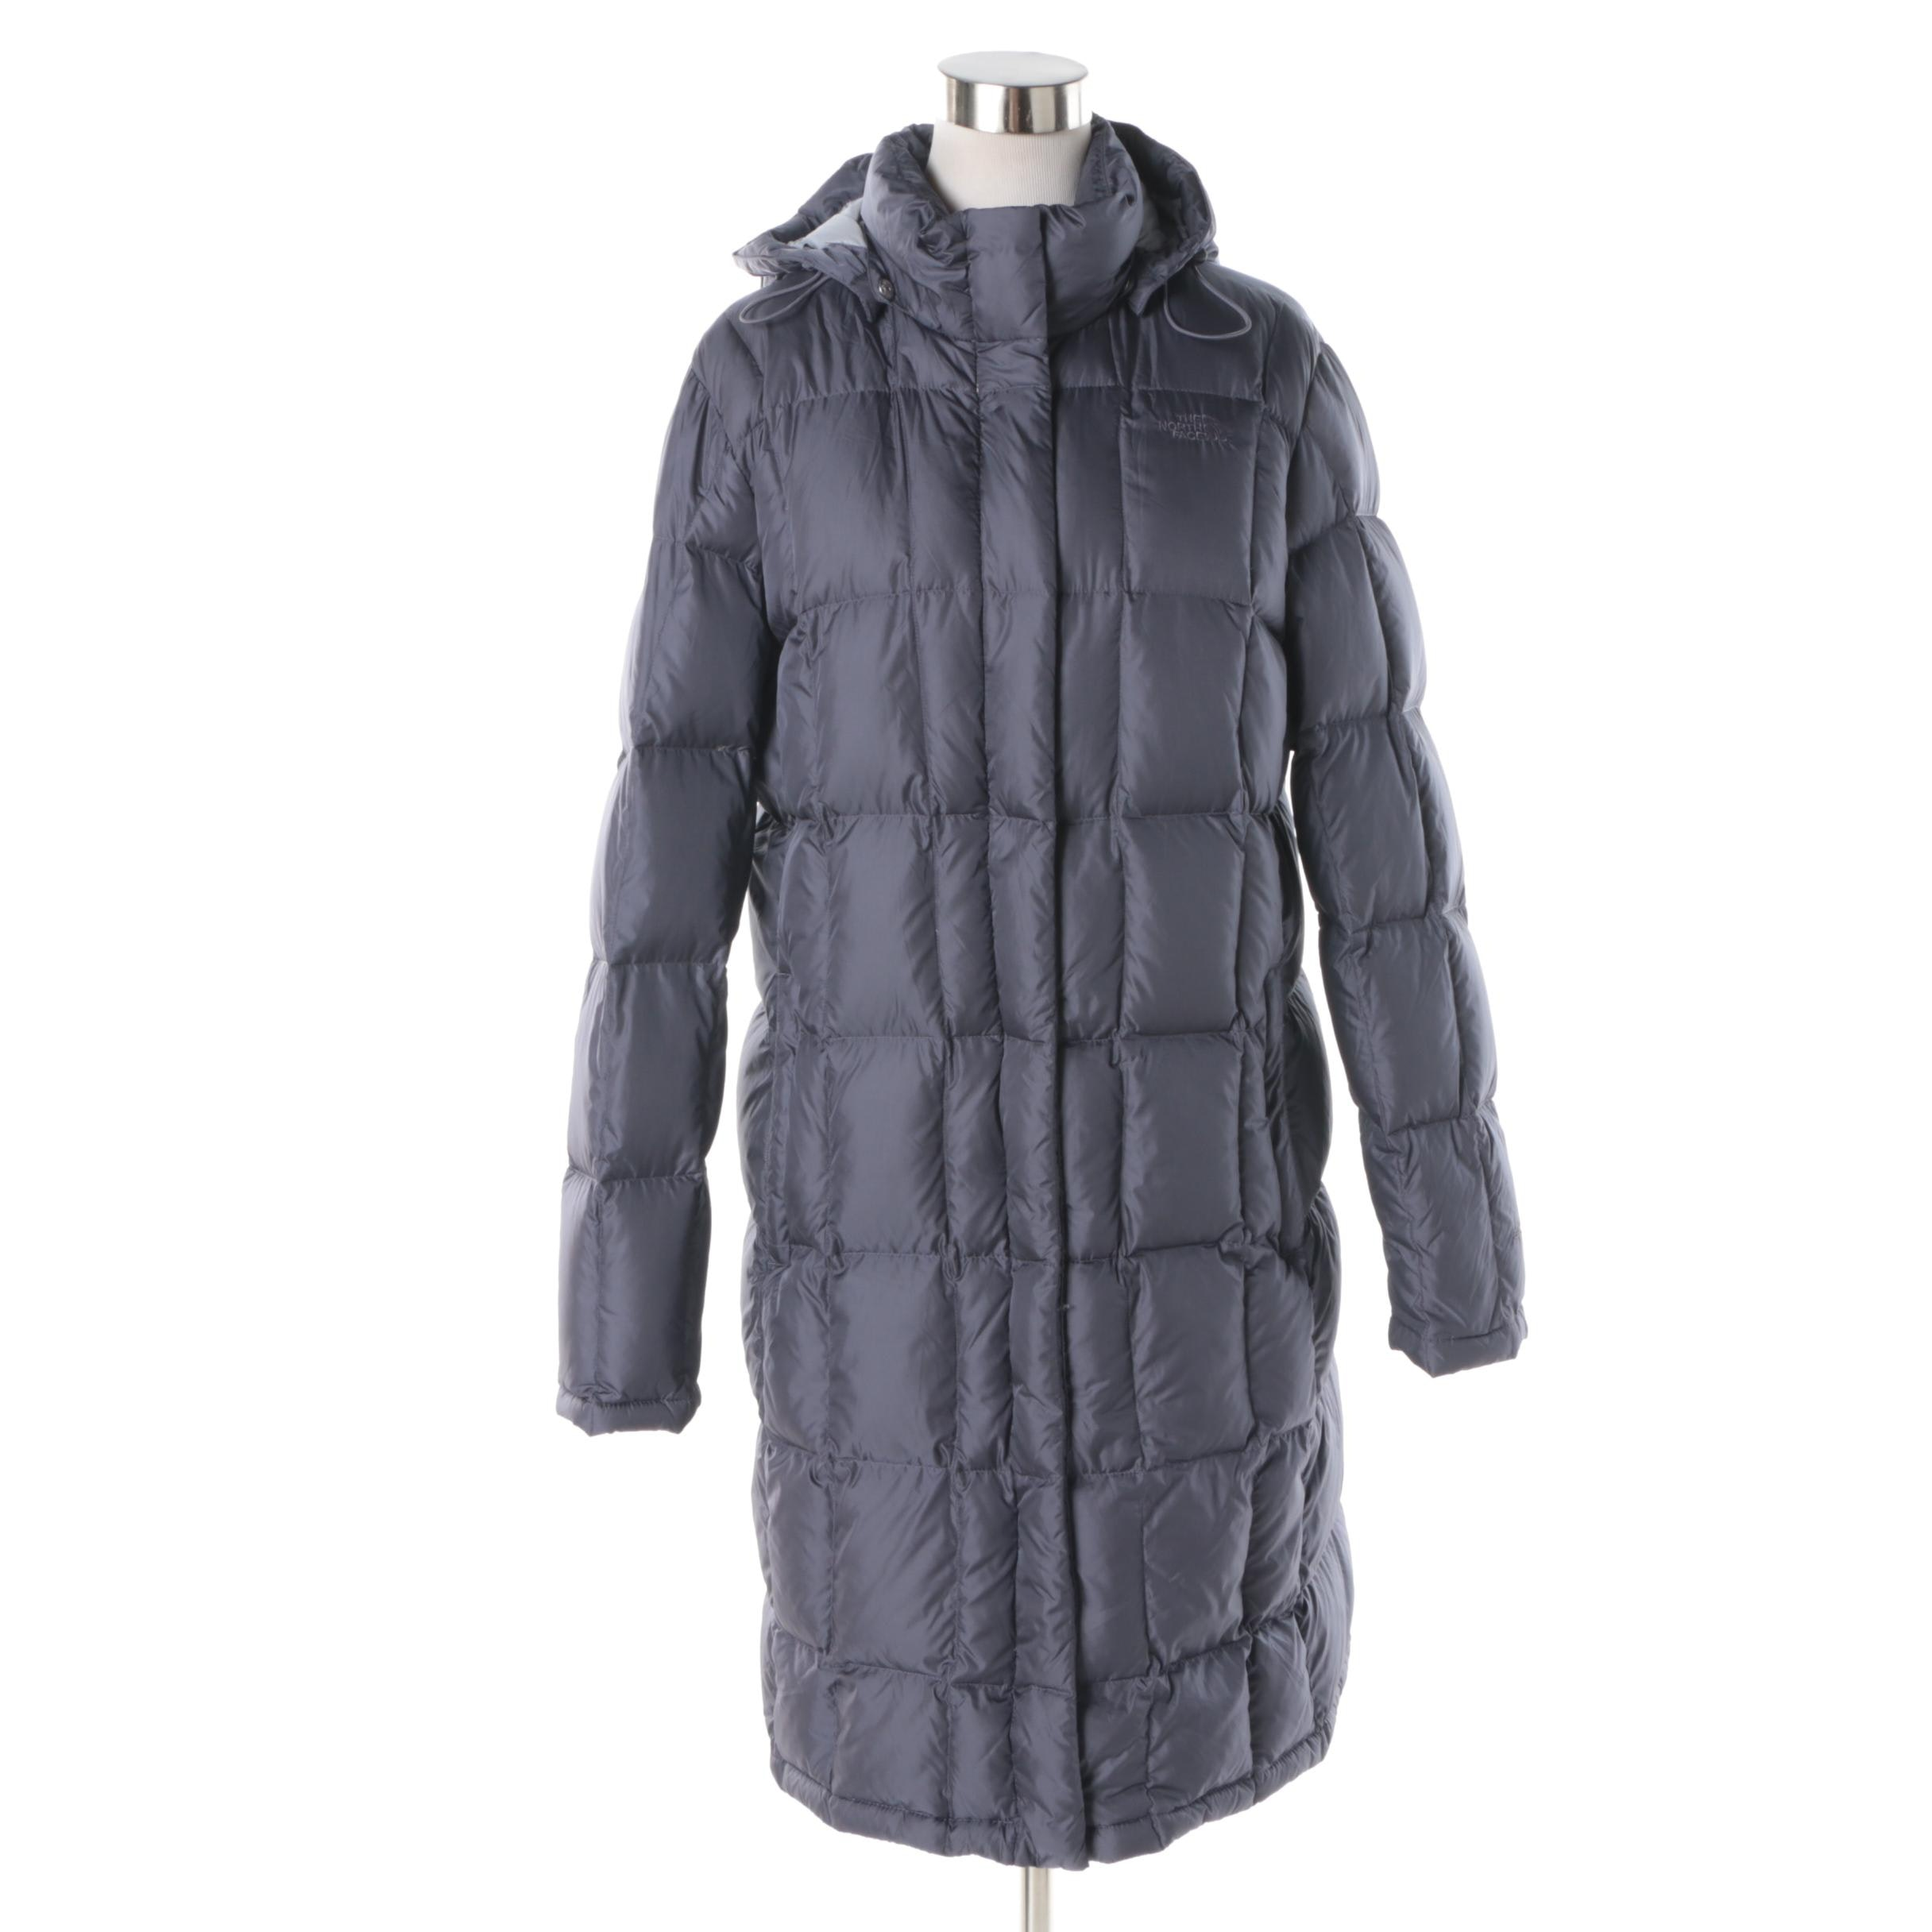 Women S The North Face 550 Puffer Coat With Detachable Hood Ebth